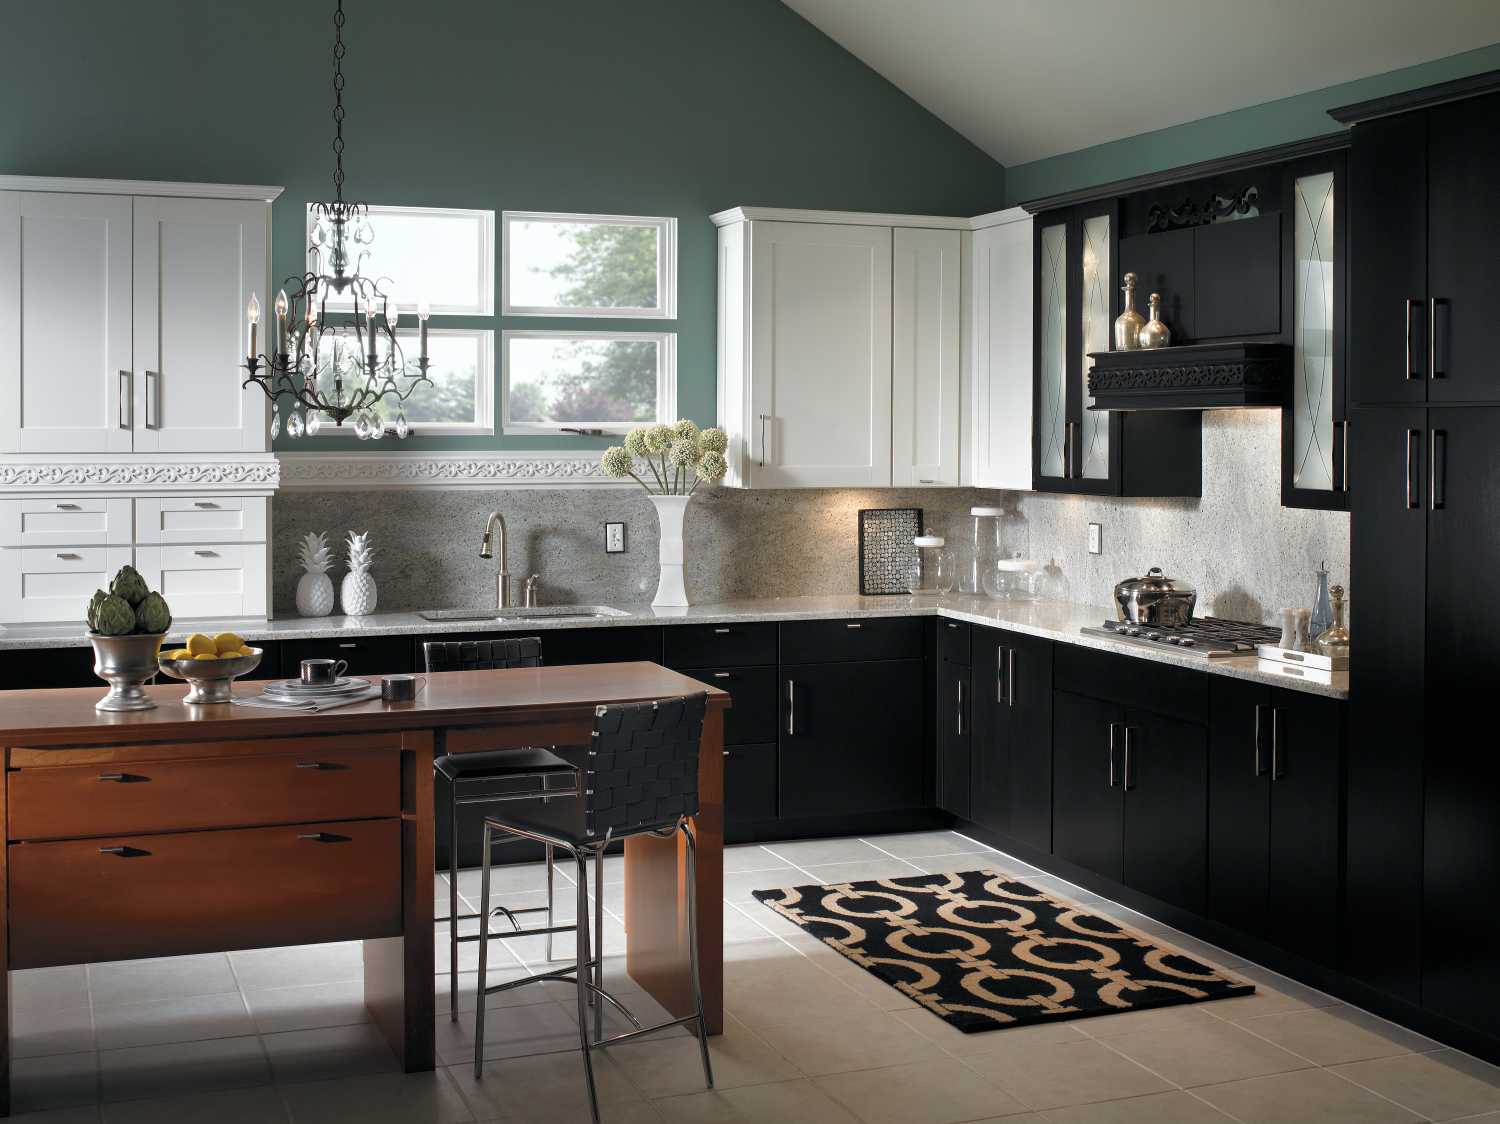 Bay area kitchen cabinets company sincere home d cor for Kitchen cabinets quotation